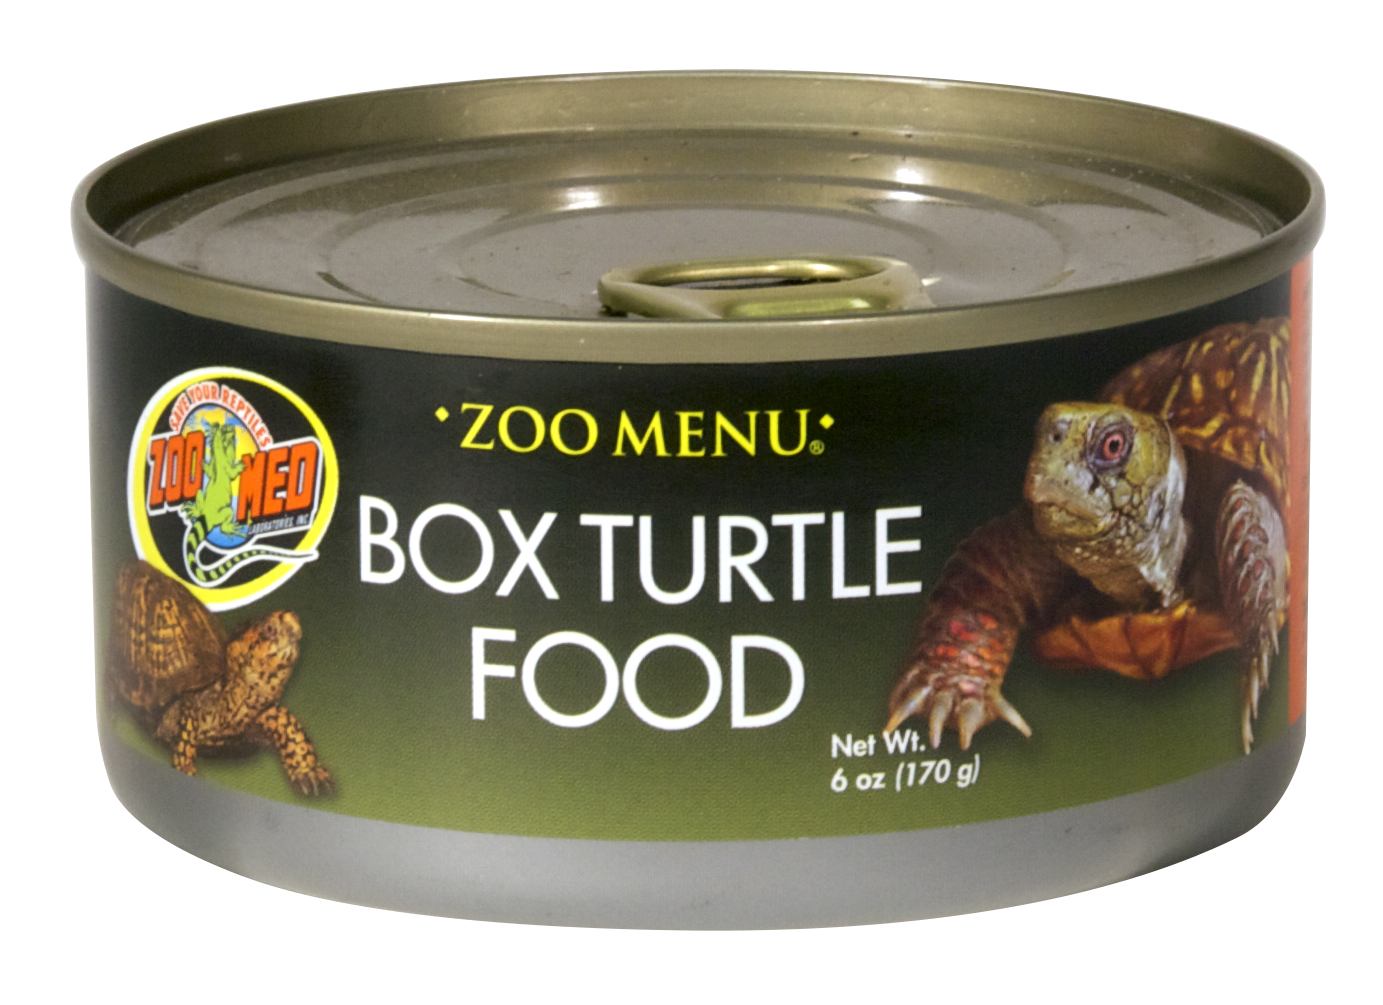 Box Turtle Food (cans/wet), 6 oz